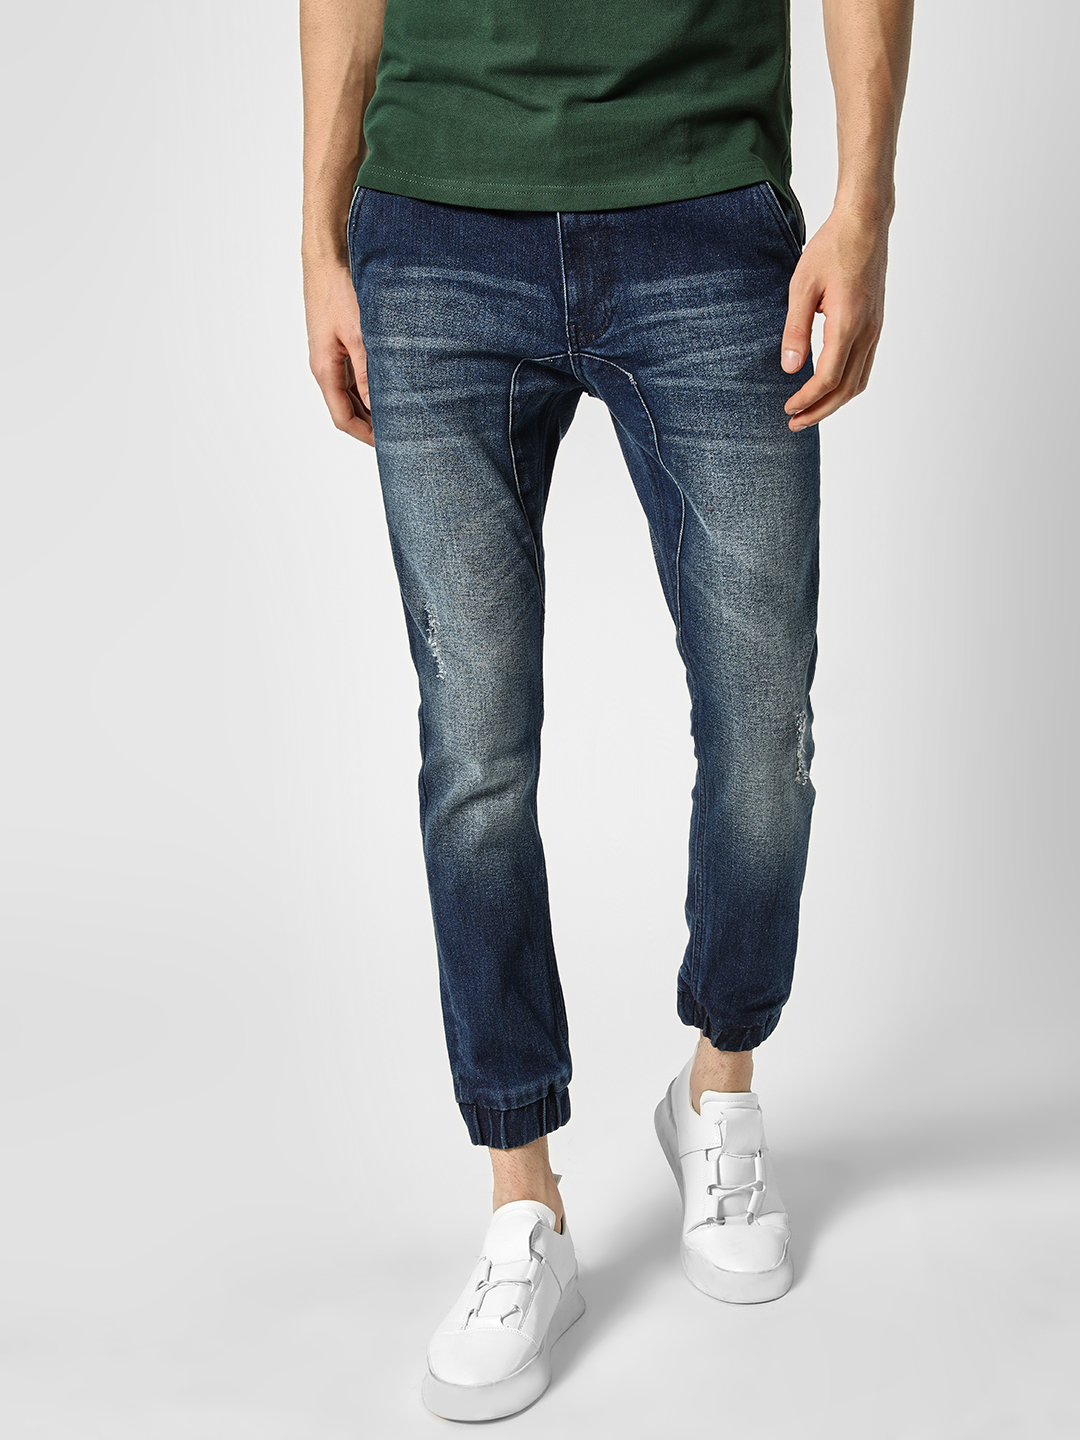 Styx & Stones Blue Distressed Washed Slim Jeans 1